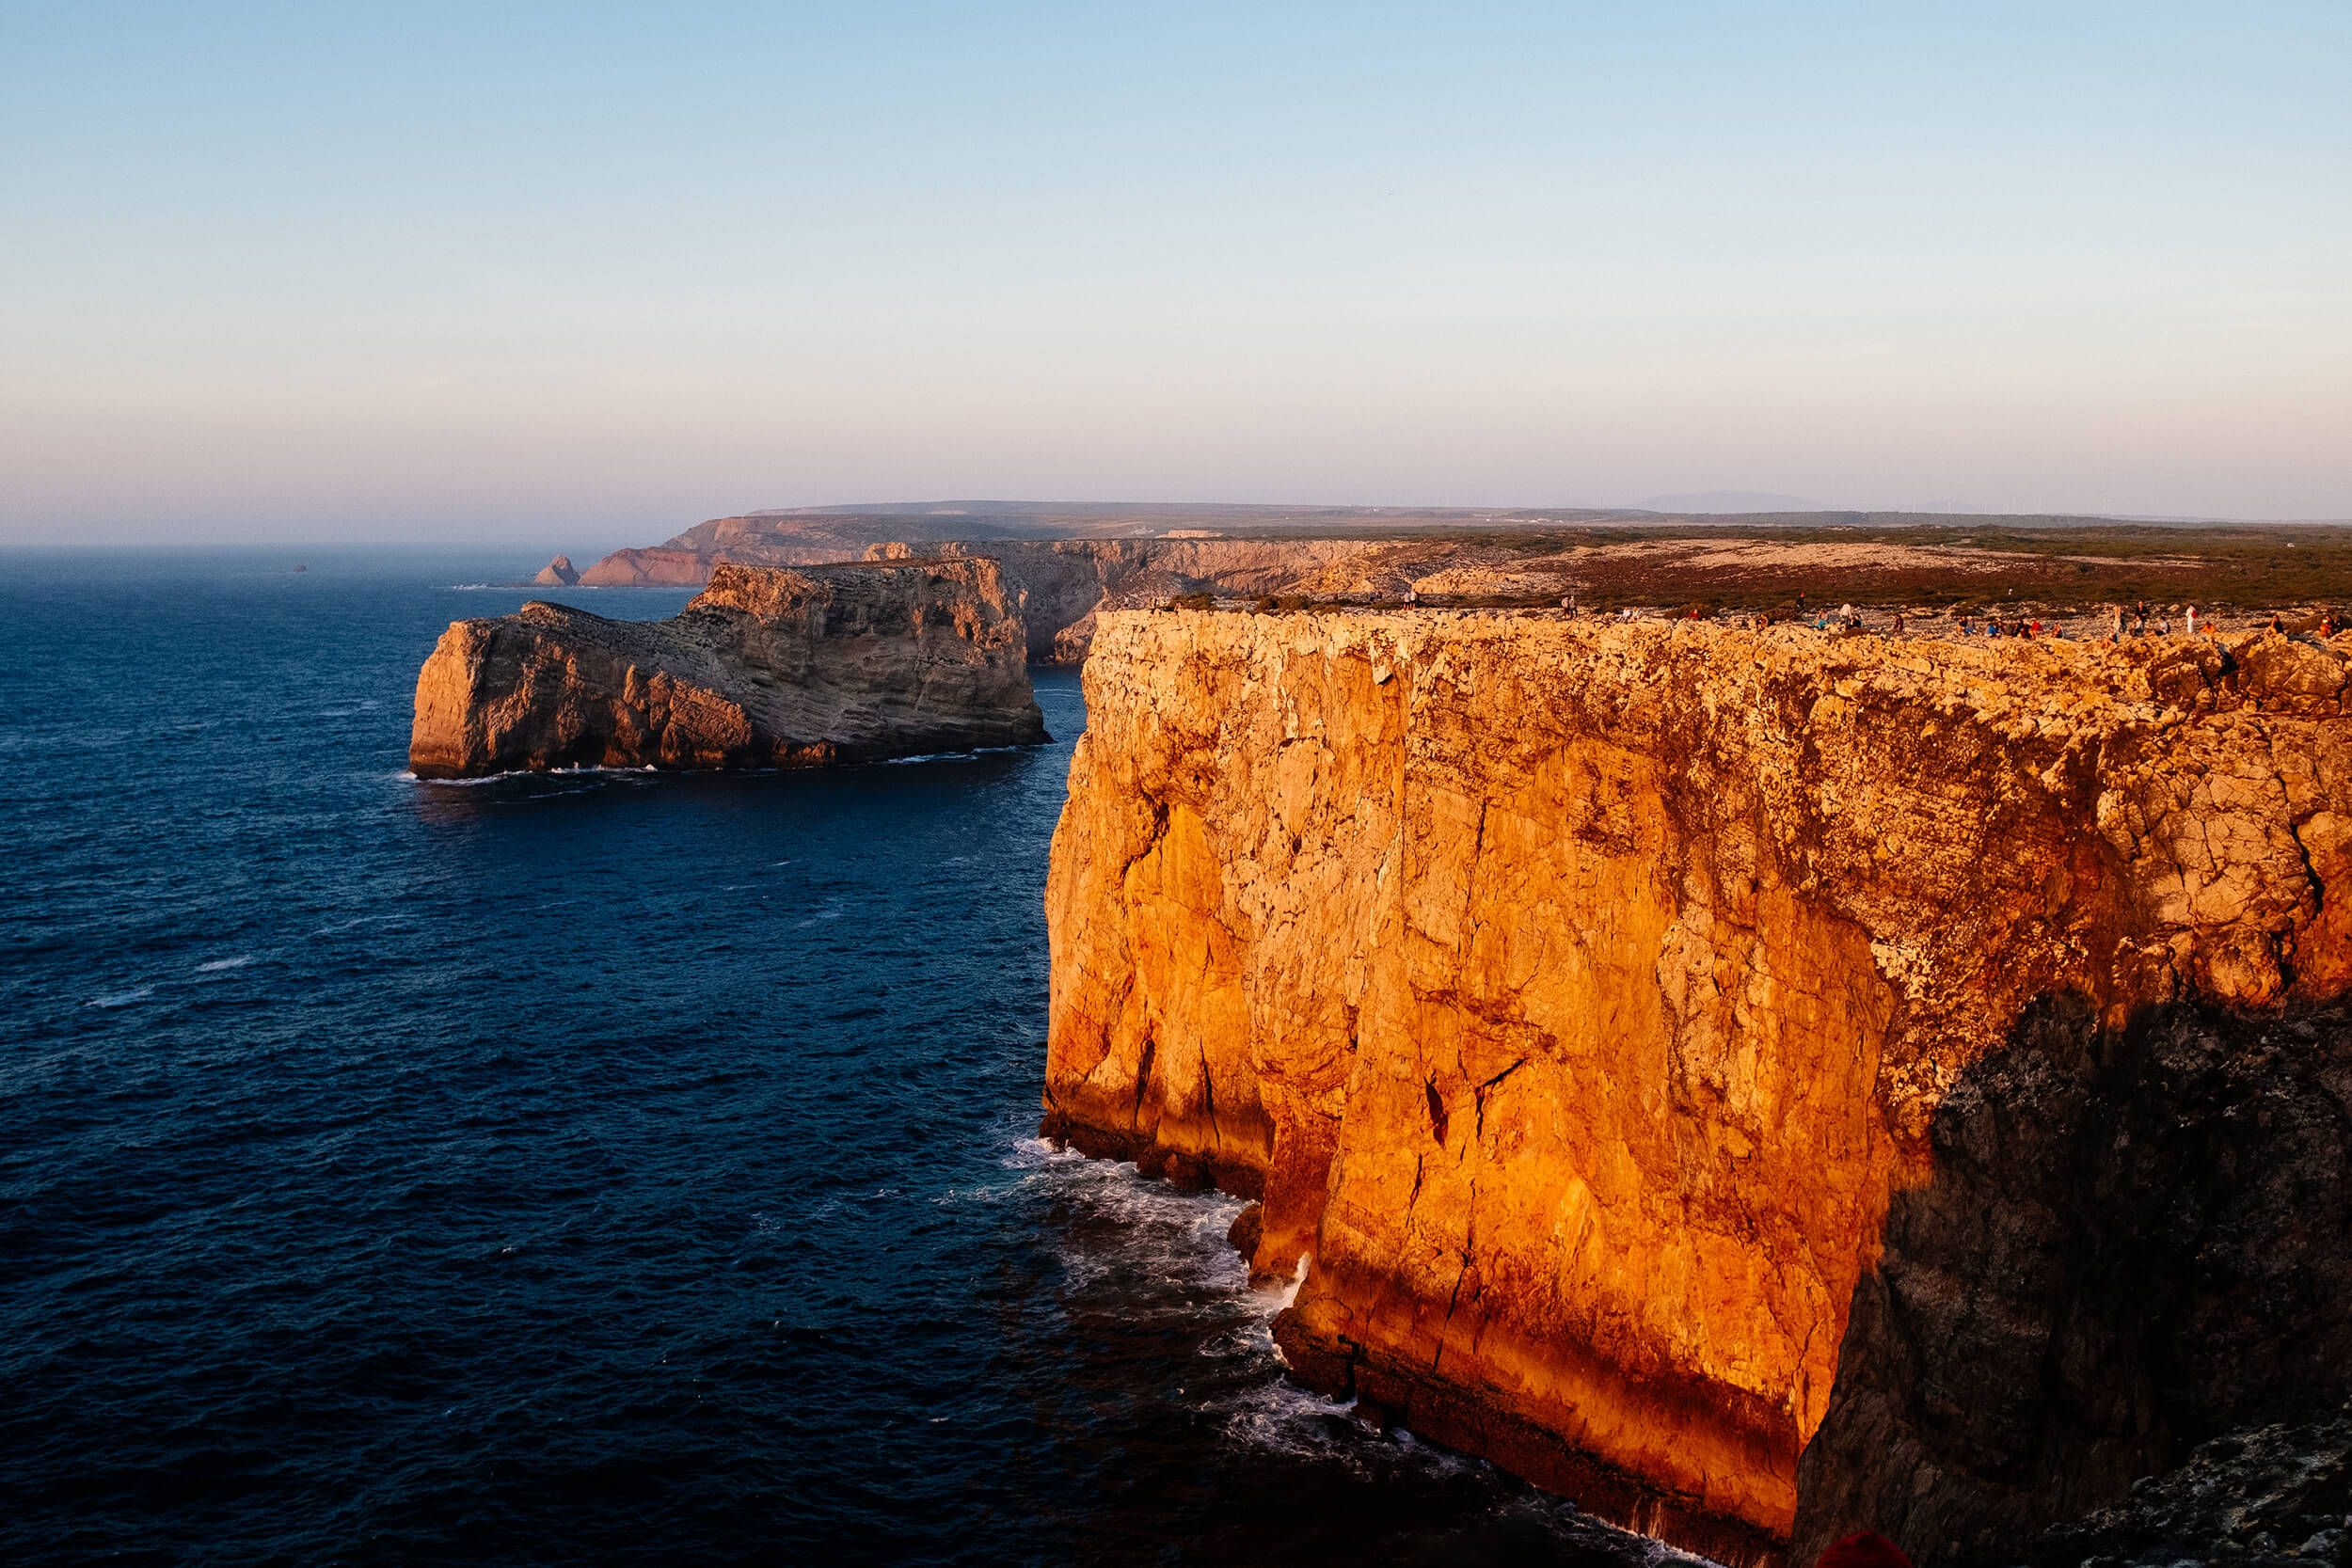 Sunset light on the cliffs of Cabo de São Vicente